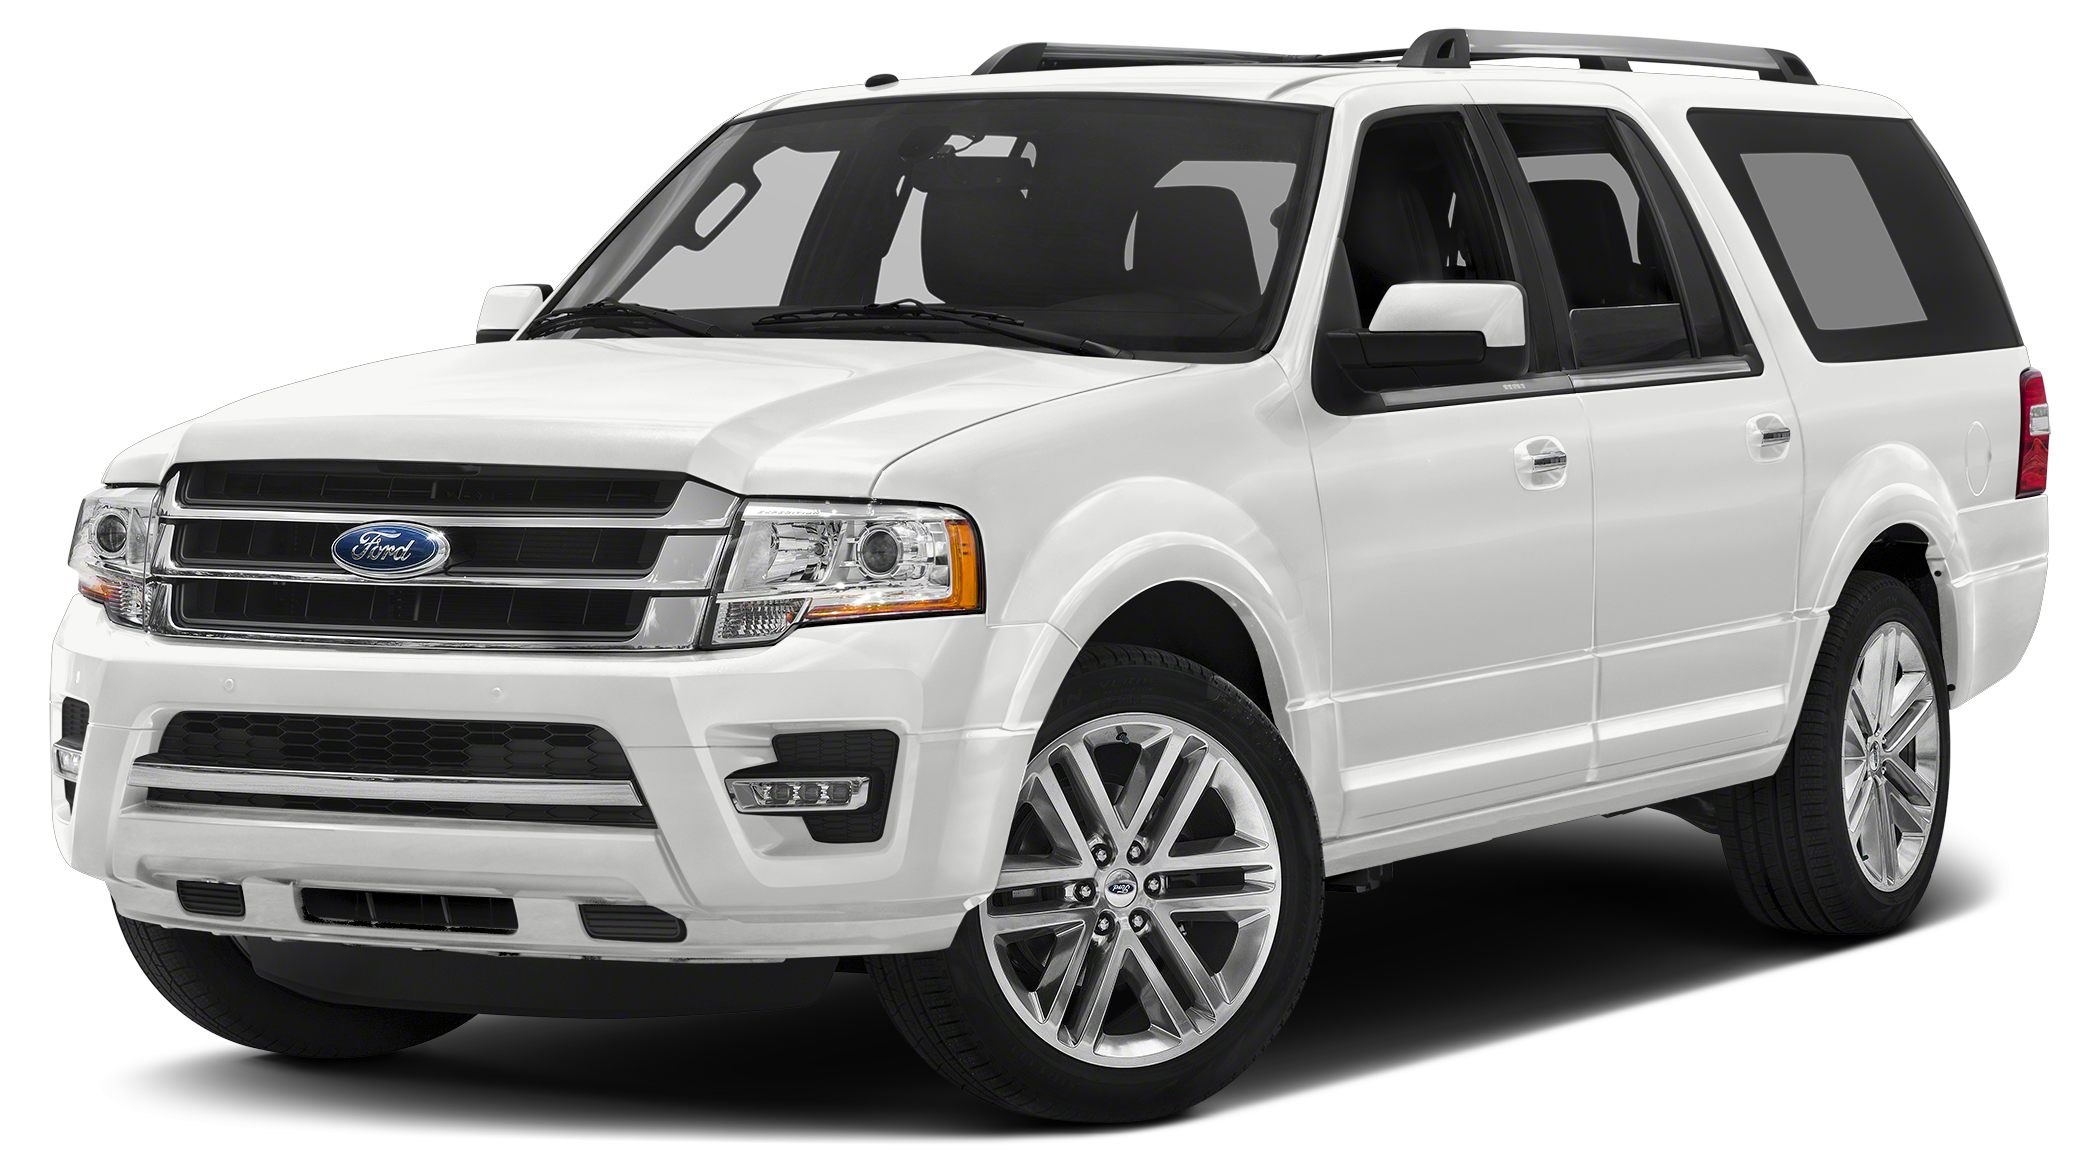 2016 Ford Expedition EL Limited The 2016 Ford Expedition features a new aggressive front end creat